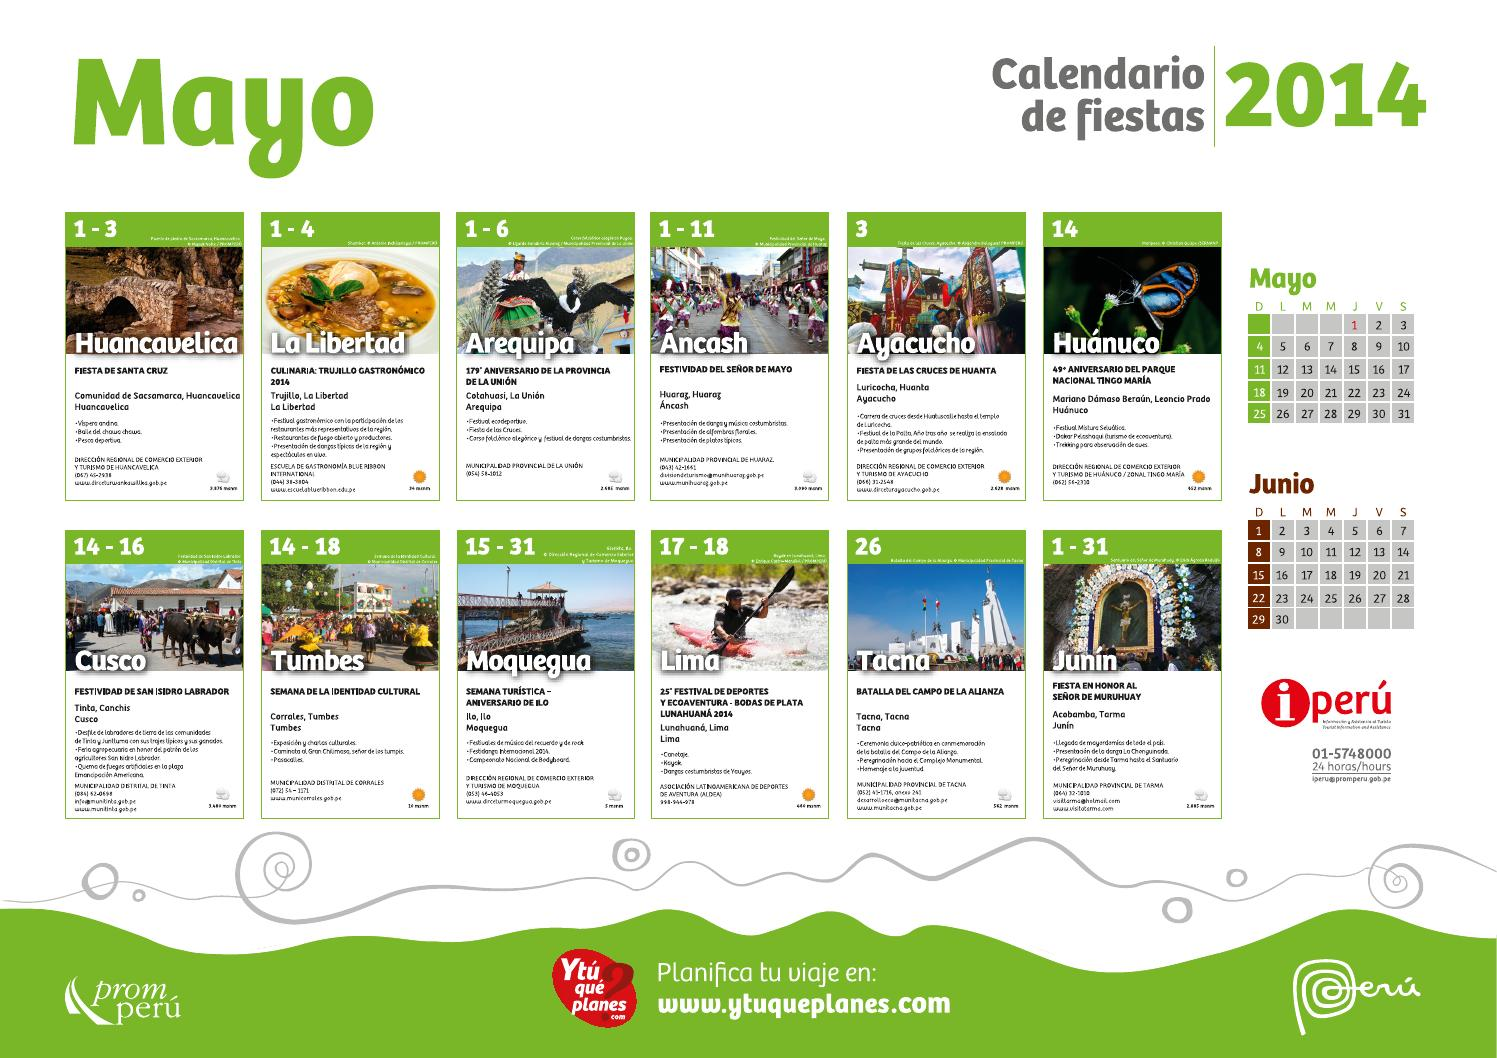 Calendario de fiestas mayo by visit peru issuu for Horario peru wellness